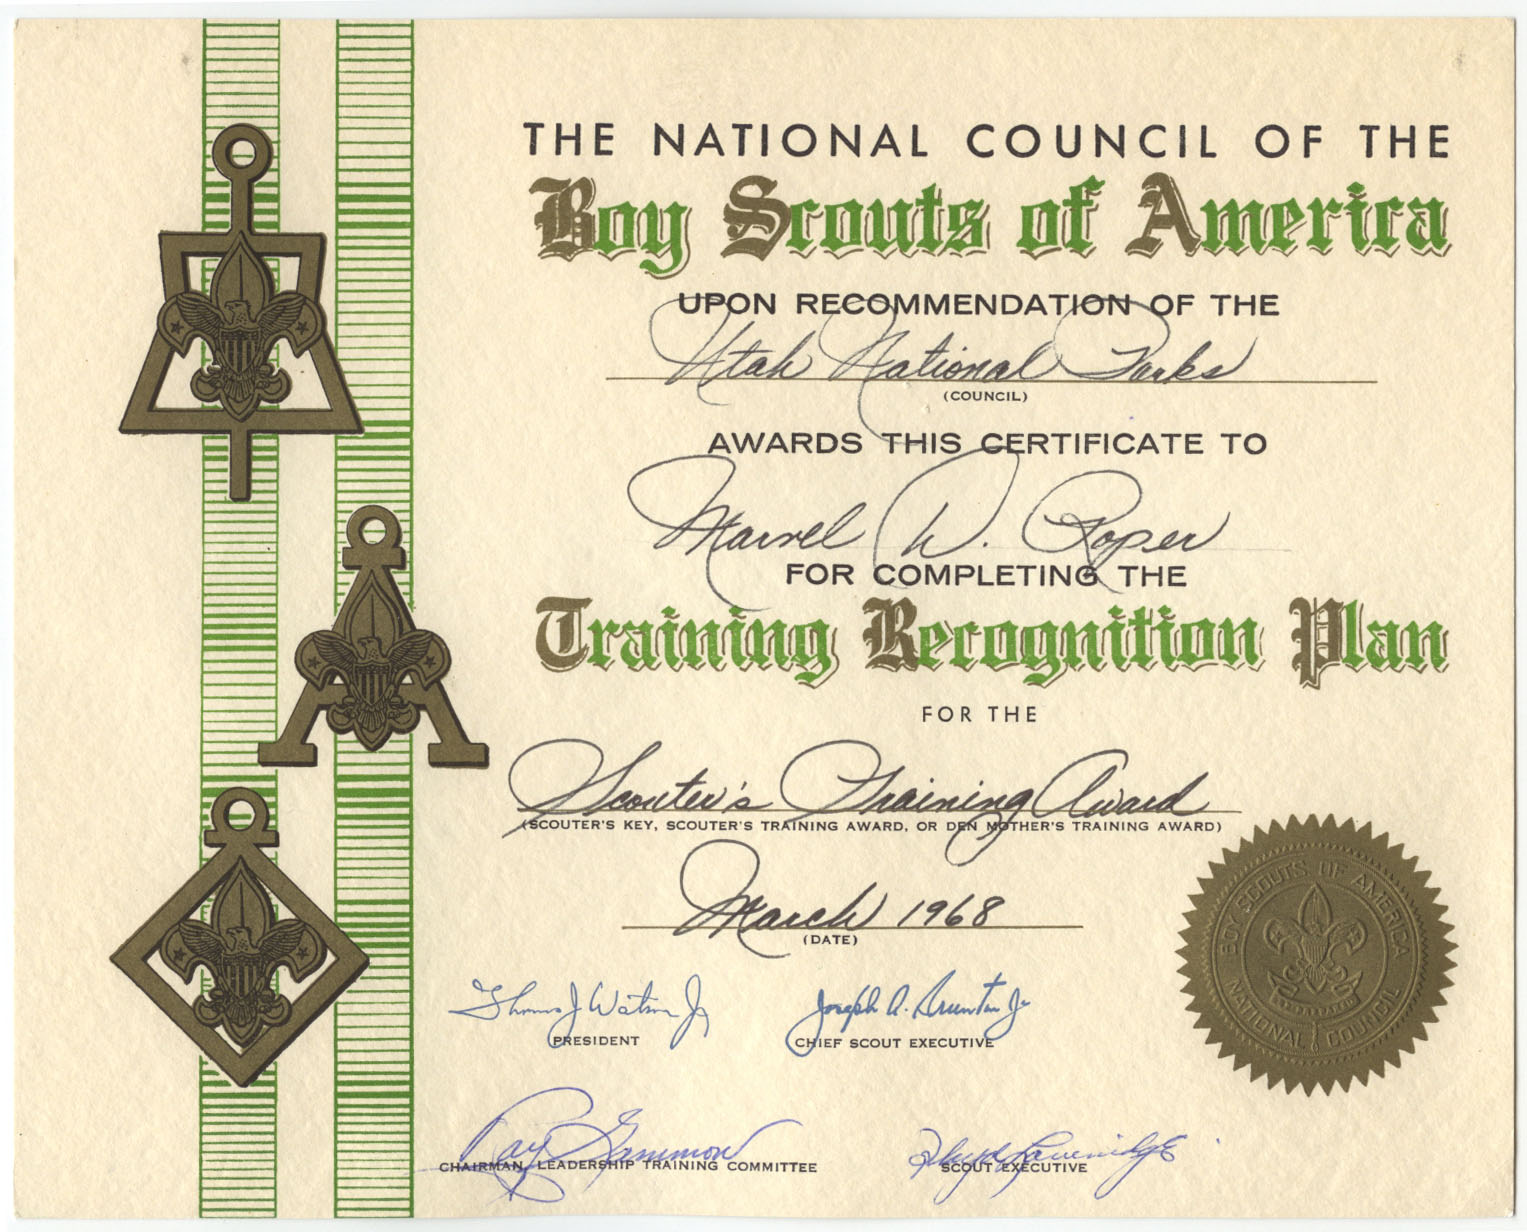 Marv roper boy scout training certificate family preserves marv roper boy scout training certificate yadclub Choice Image